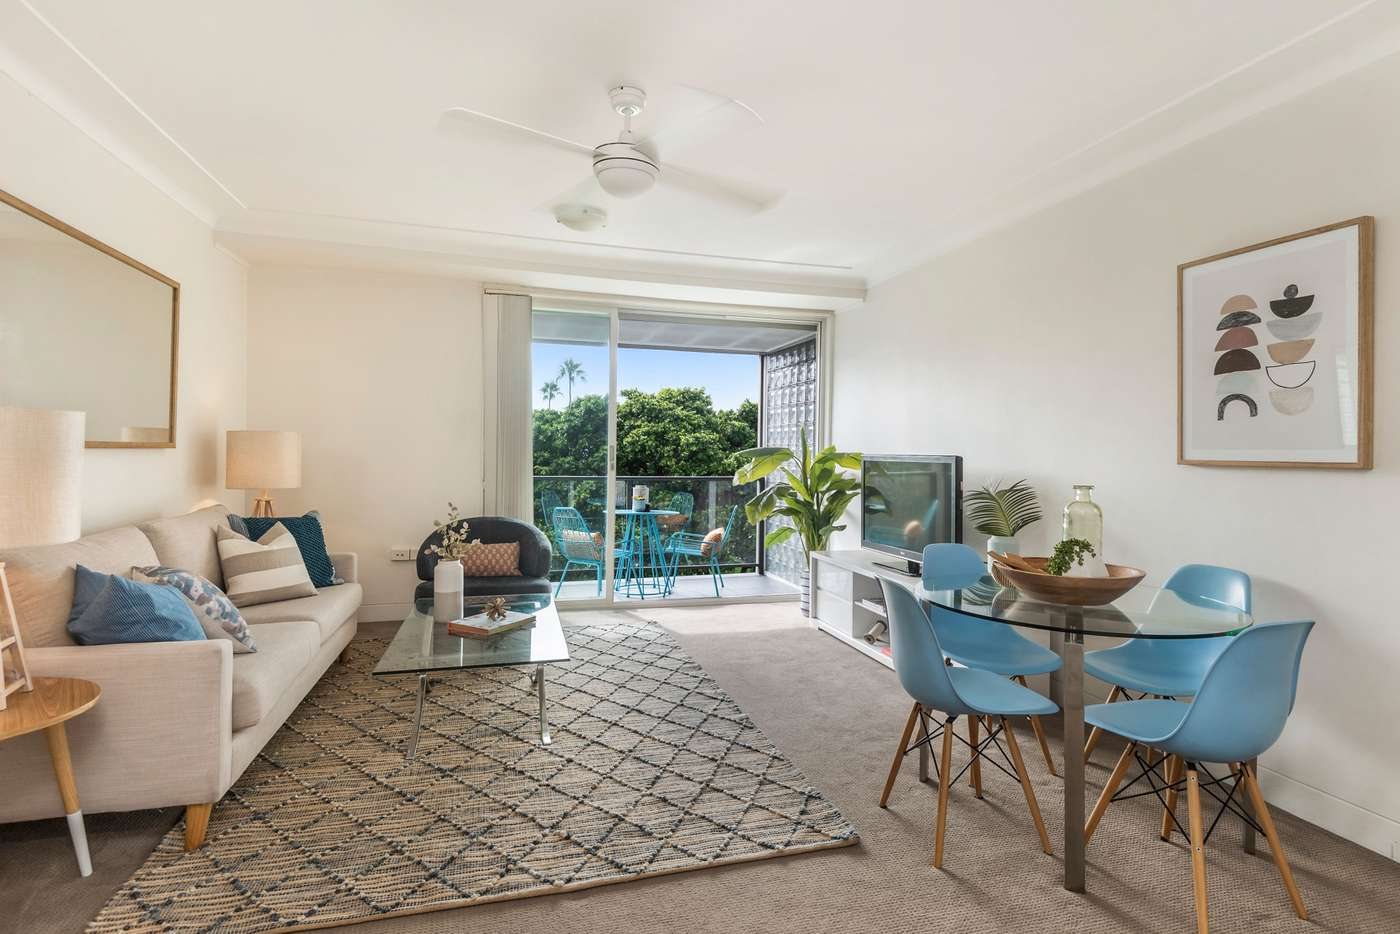 Main view of Homely apartment listing, 13/11 Myahgah Road, Mosman NSW 2088